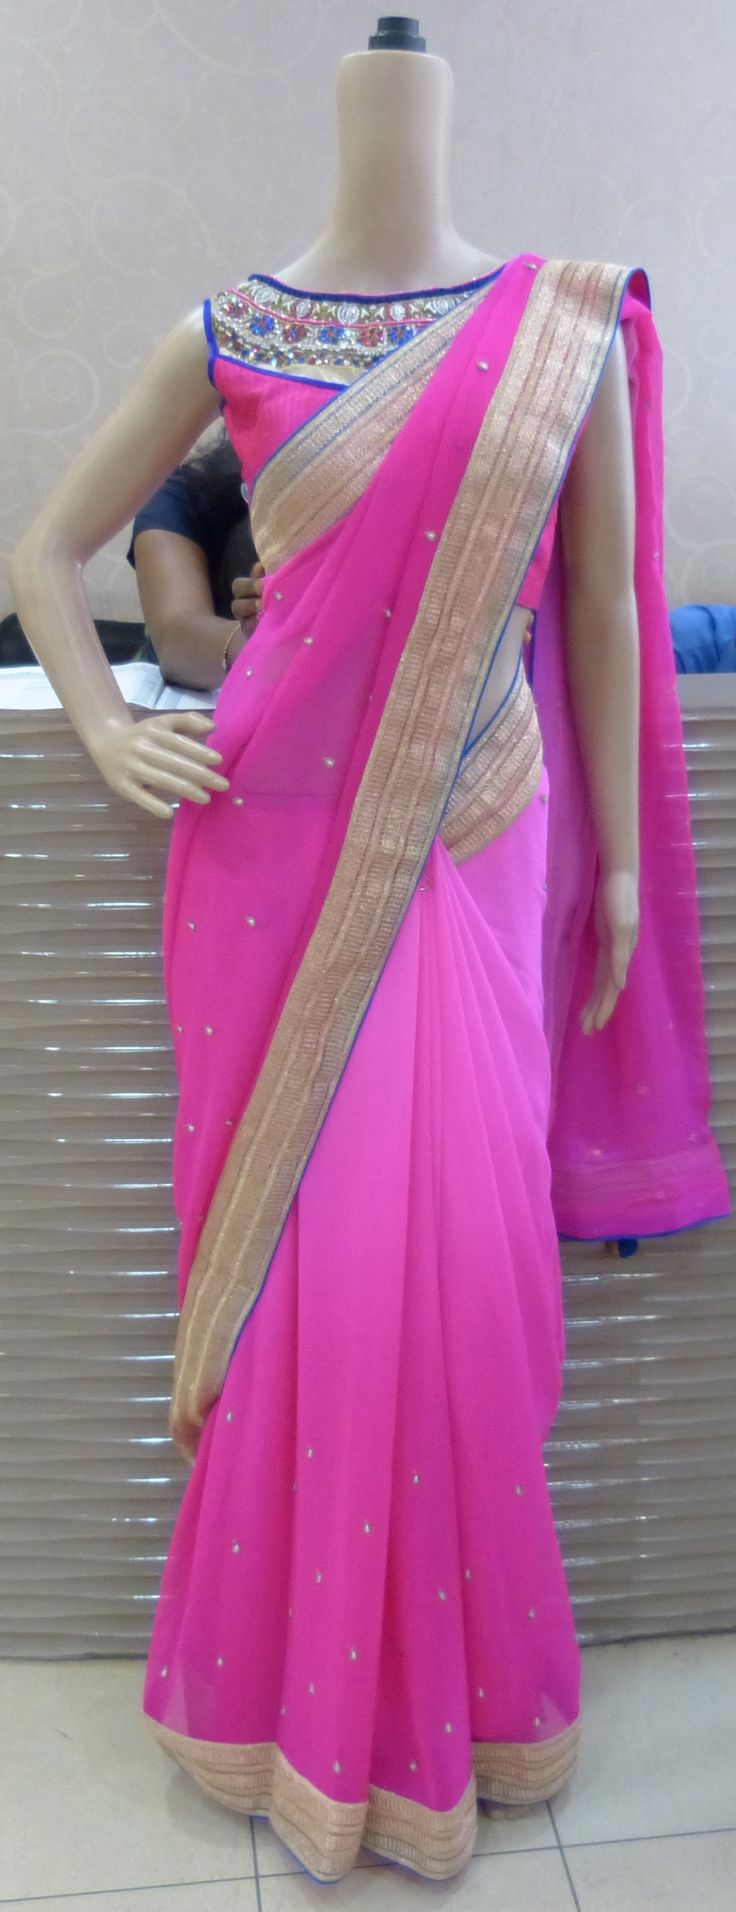 Hot pink chiffon saree with a designer blouse set with crystals and gold embroidery